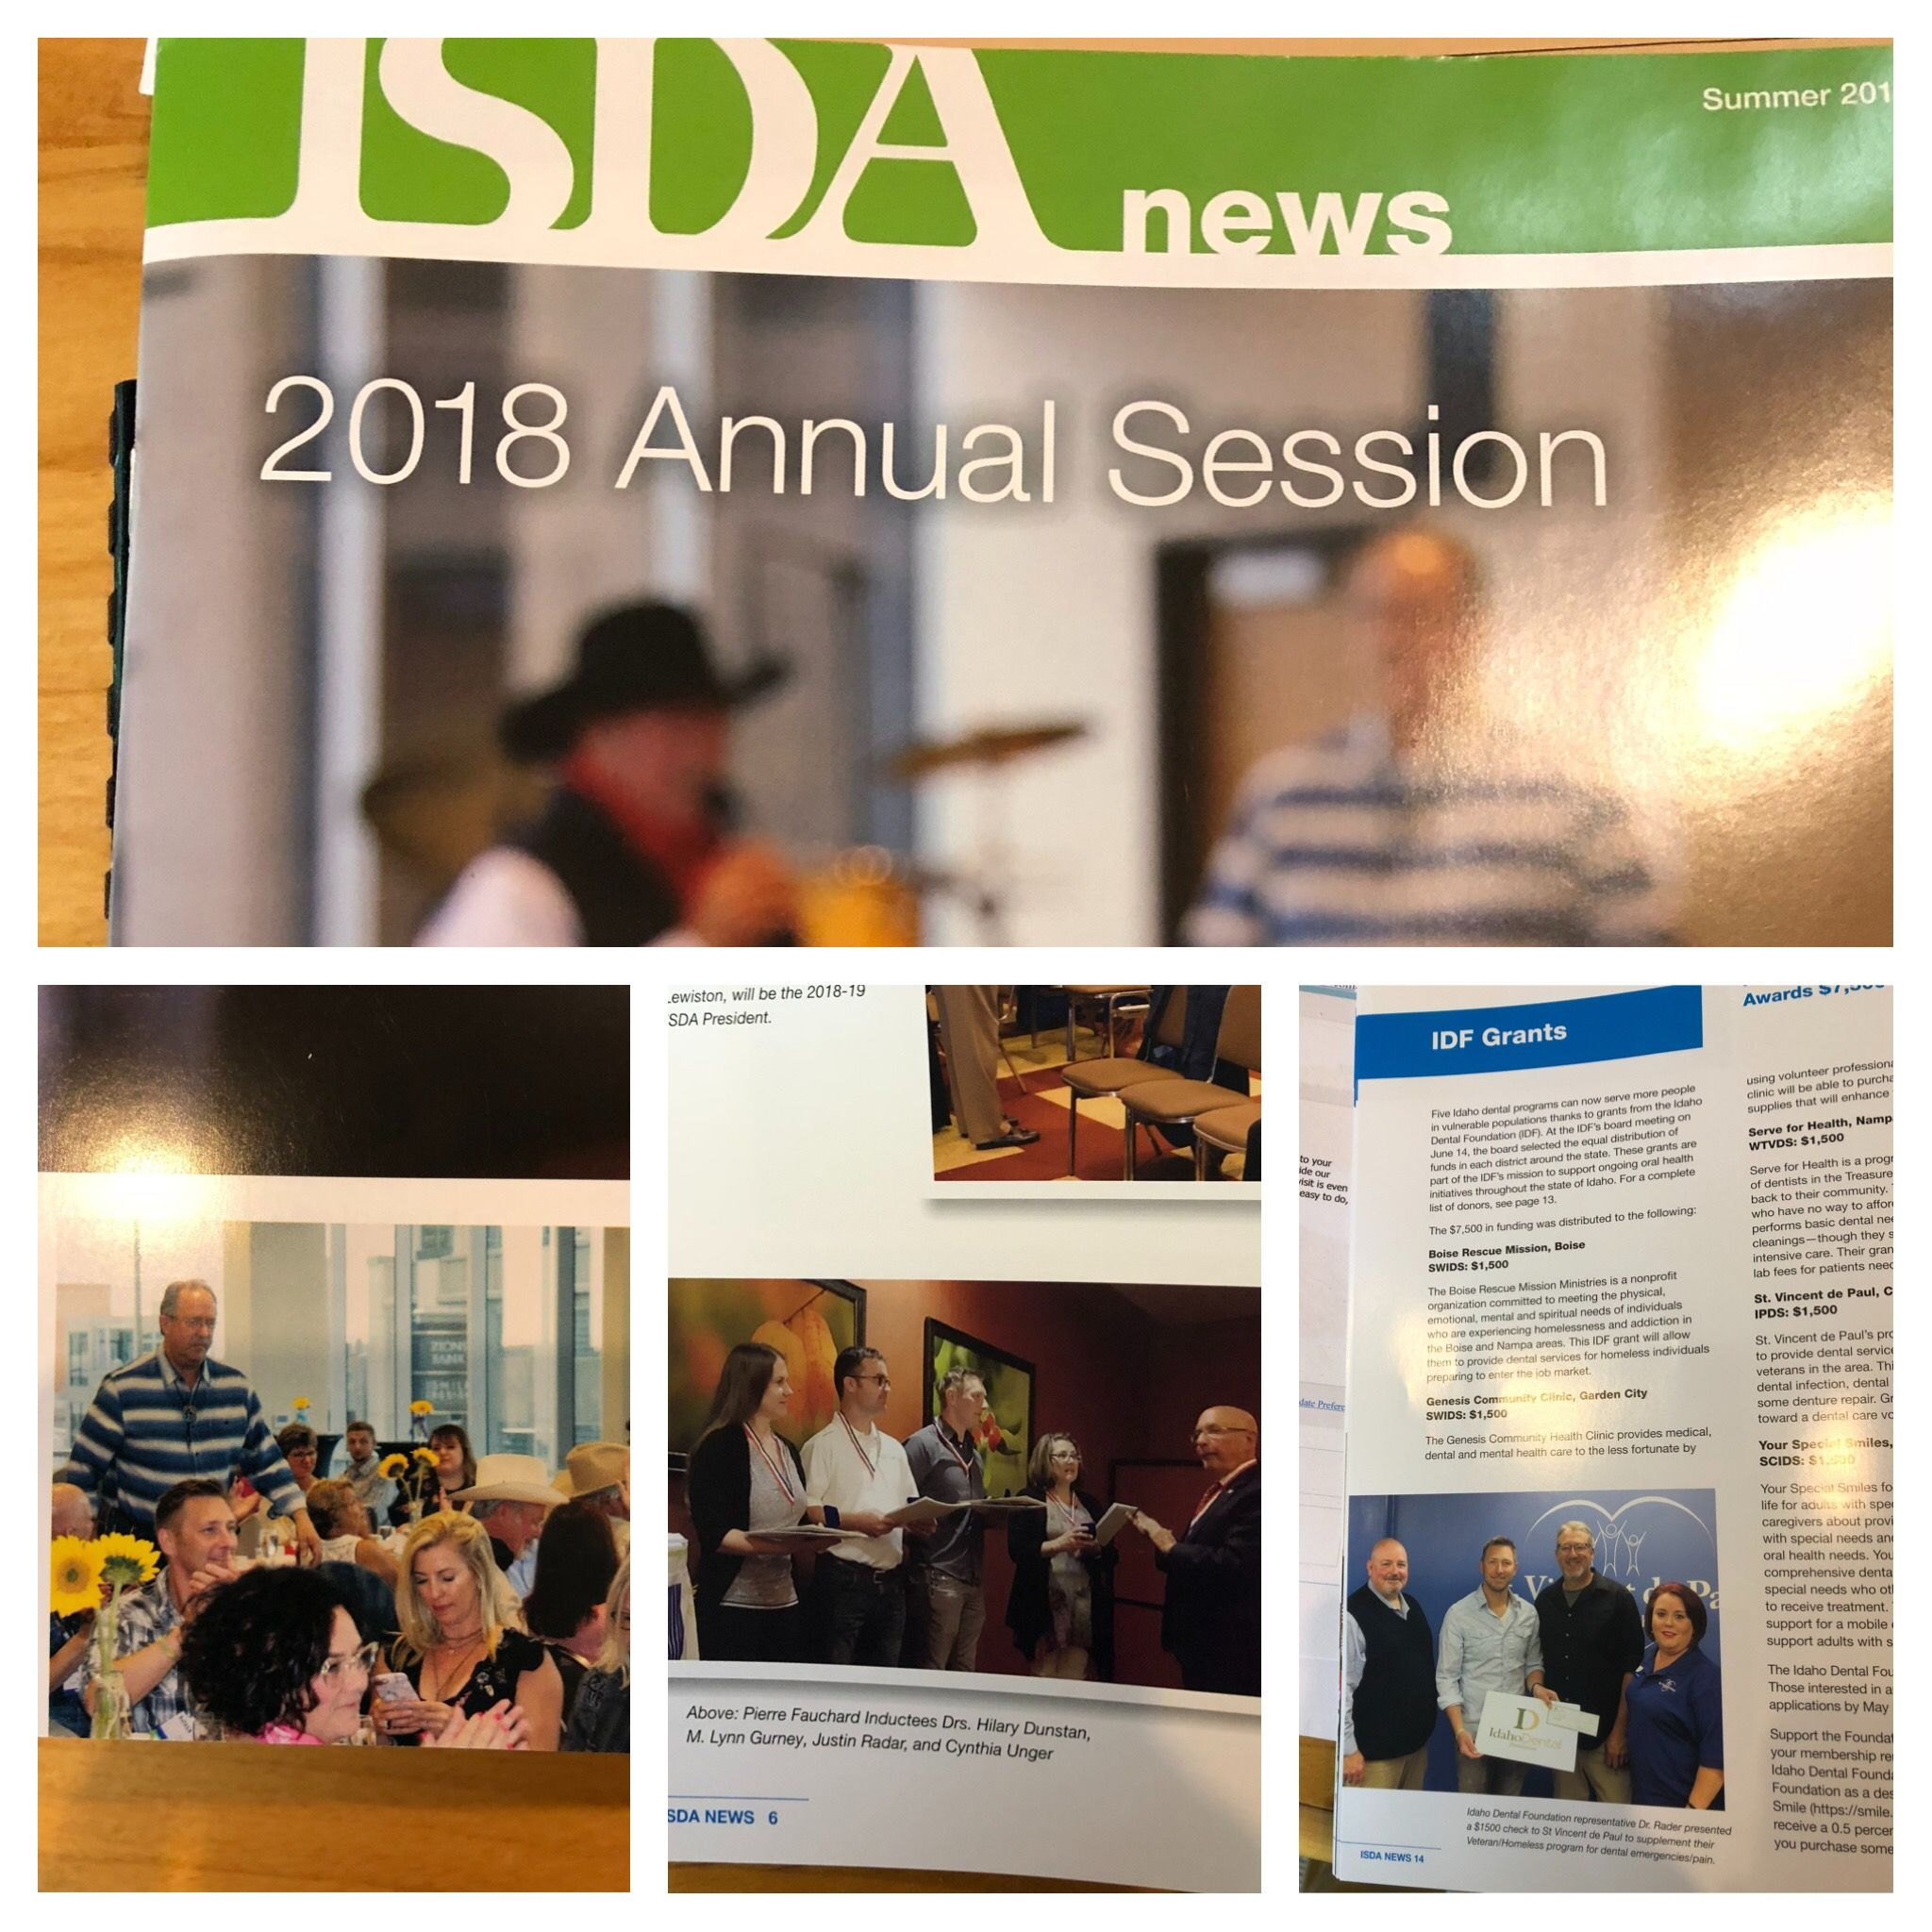 Idaho State Dental Association News Of The Annual Session And Dr